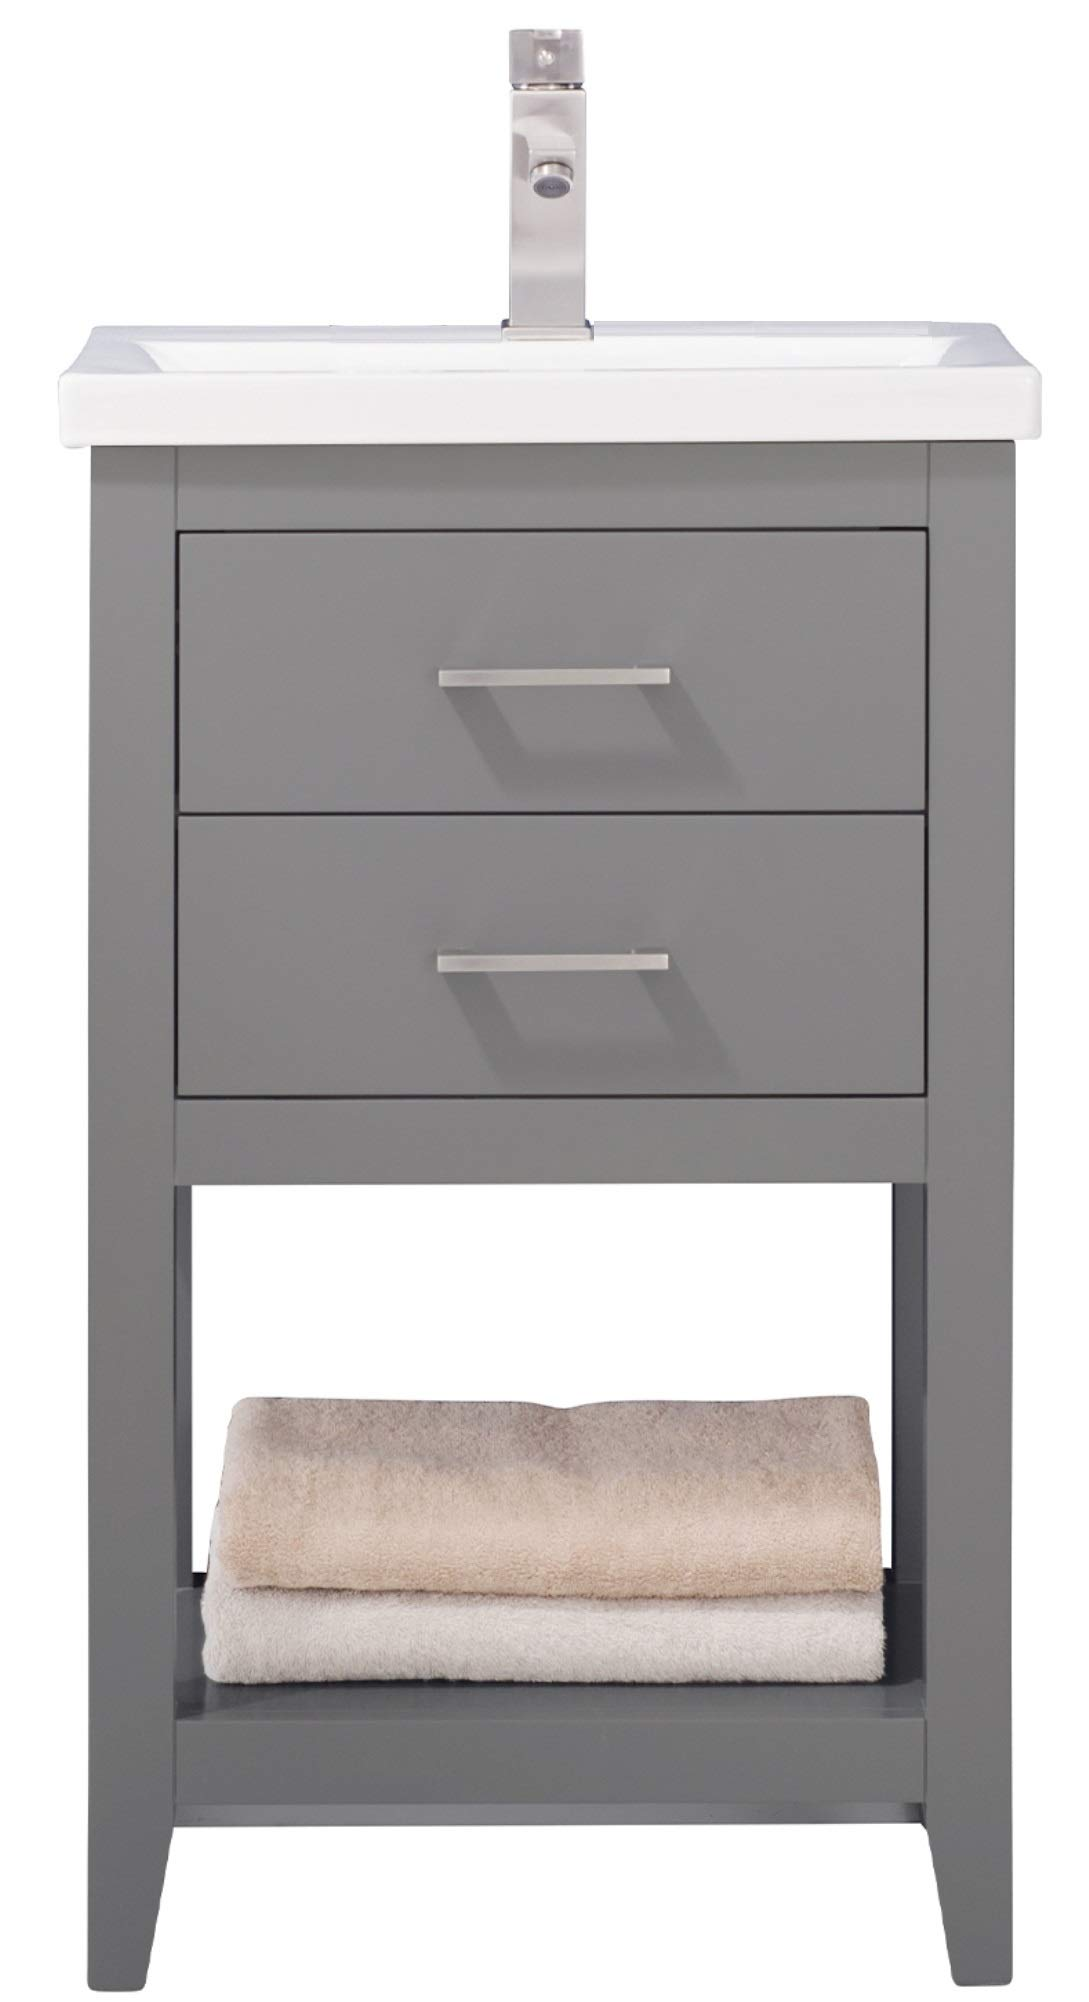 Luca Kitchen Bath Lc20fgp Dublin 20 Bathroom Vanity Set In French Gray With Integrated Porcelain Top Amazon Com